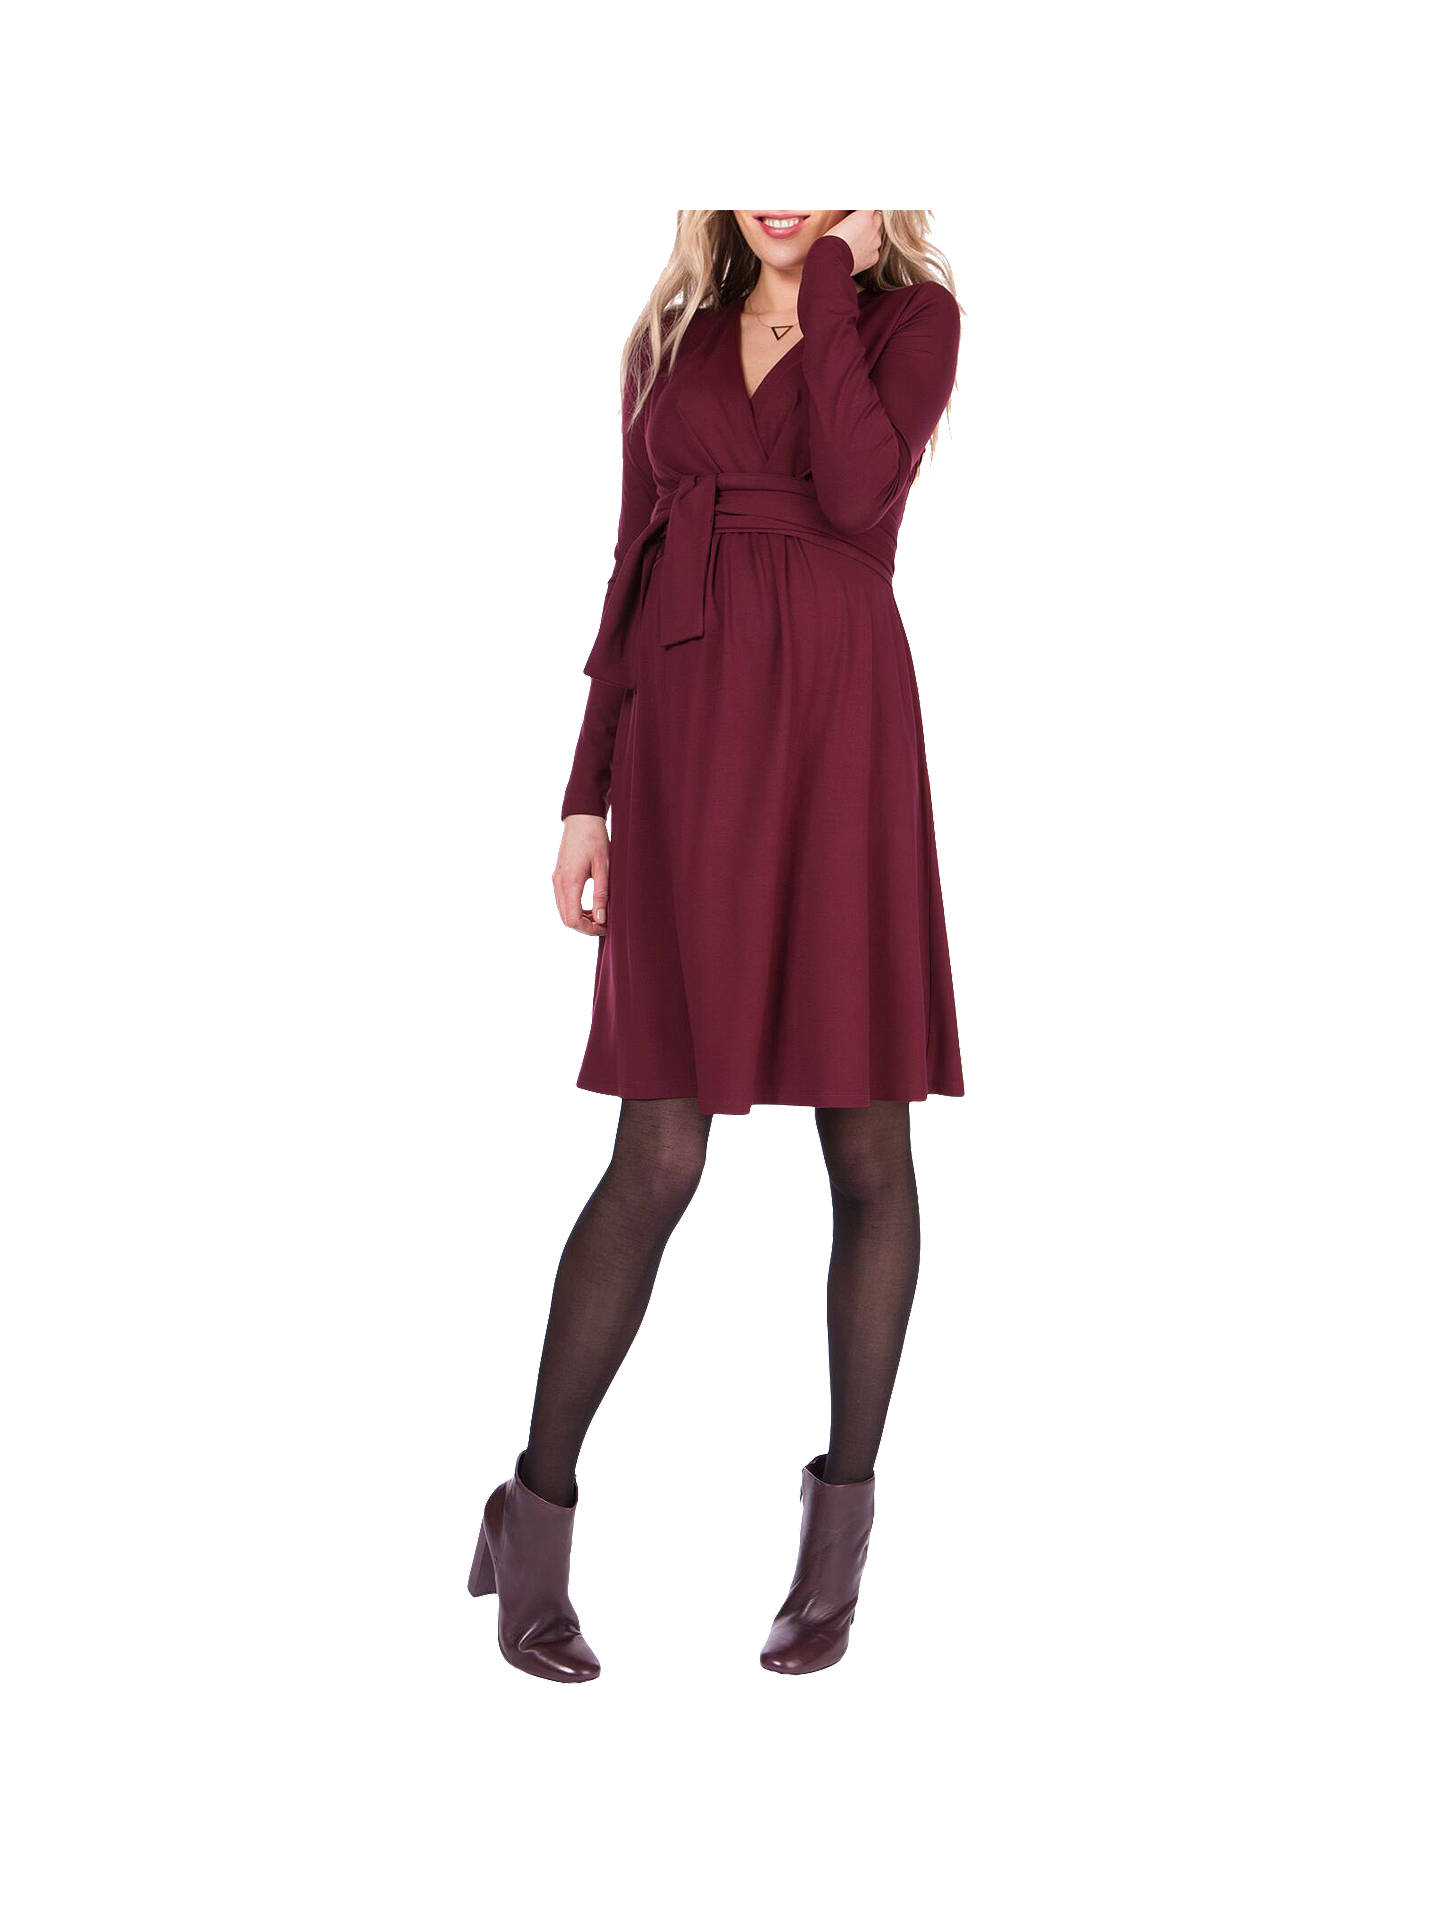 BuySéraphine Johanna Tie Maternity Nursing Dress, Burgundy, 8 Online at johnlewis.com